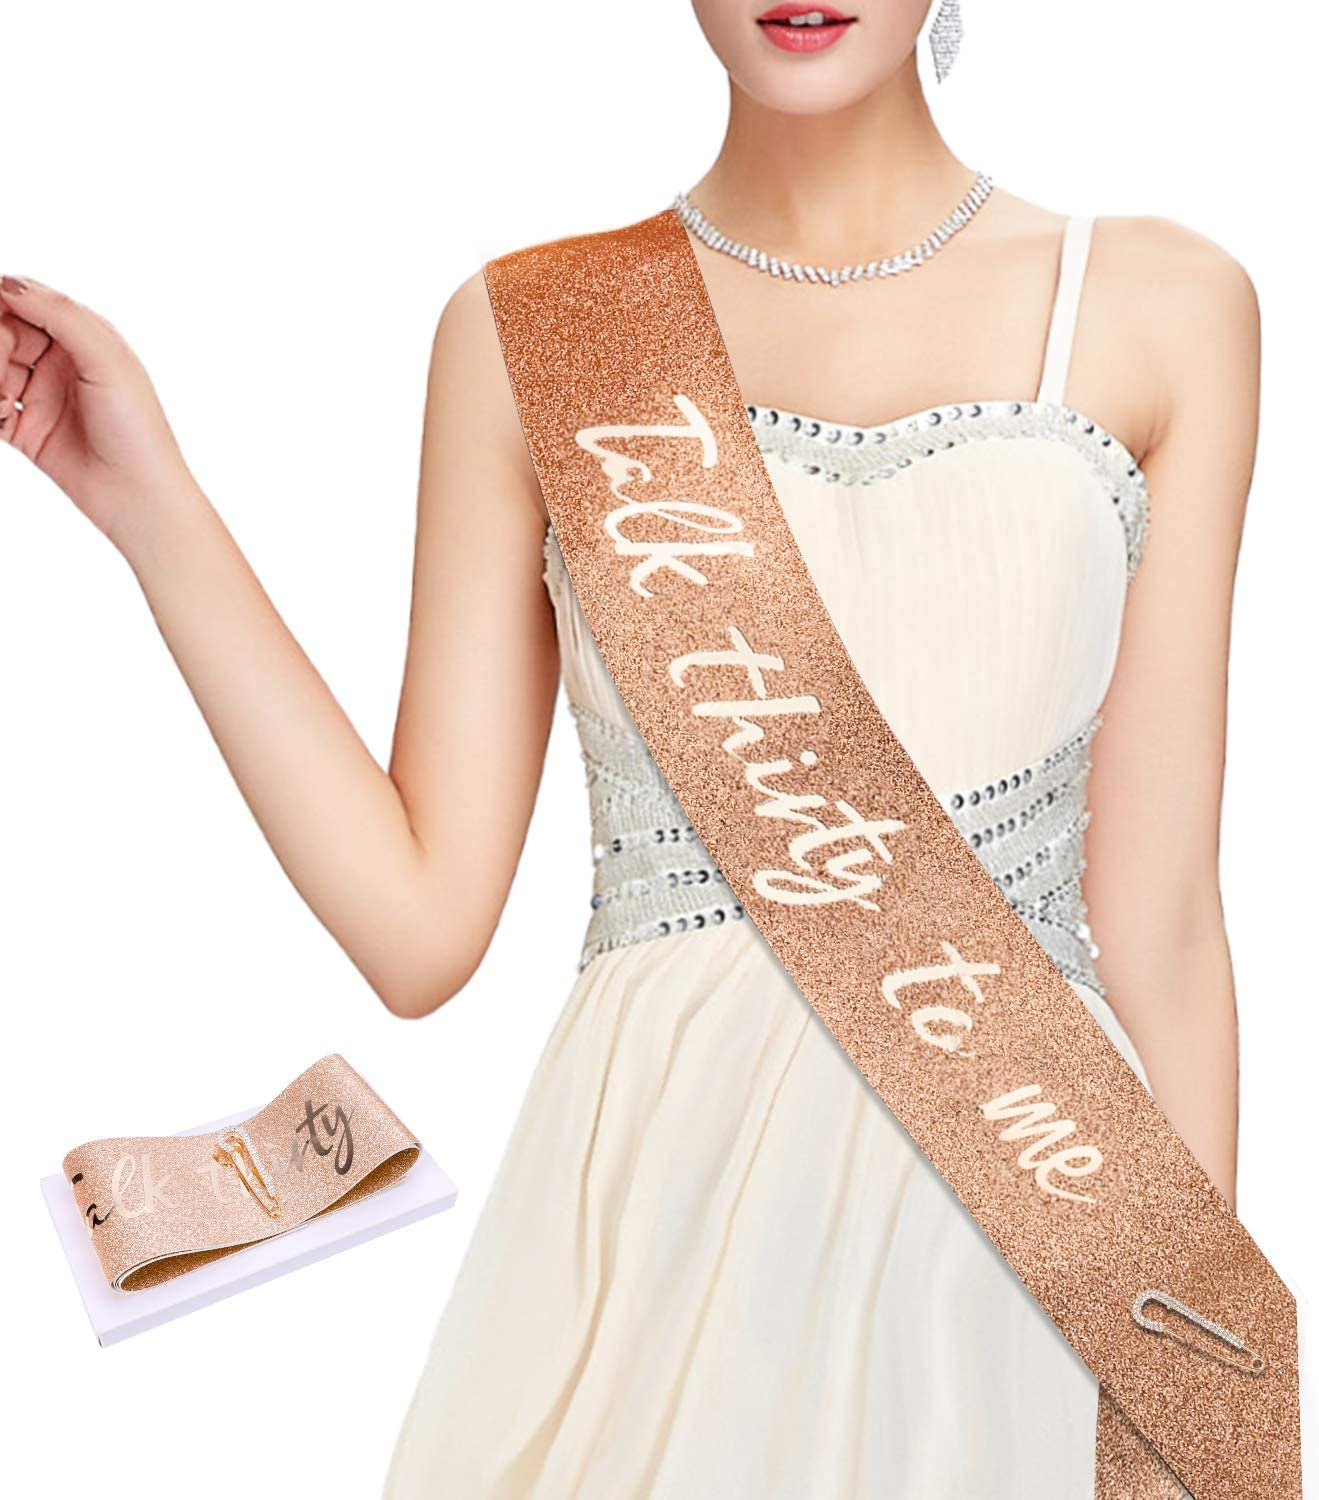 Qpout Glitter Rose Gold Talk Thirty to Me Sash-30th Birth Birthday Sash 30 Bday 30 Bday 30 Birthday Gift Birthday Party Party Favors Party Supplies Decoration